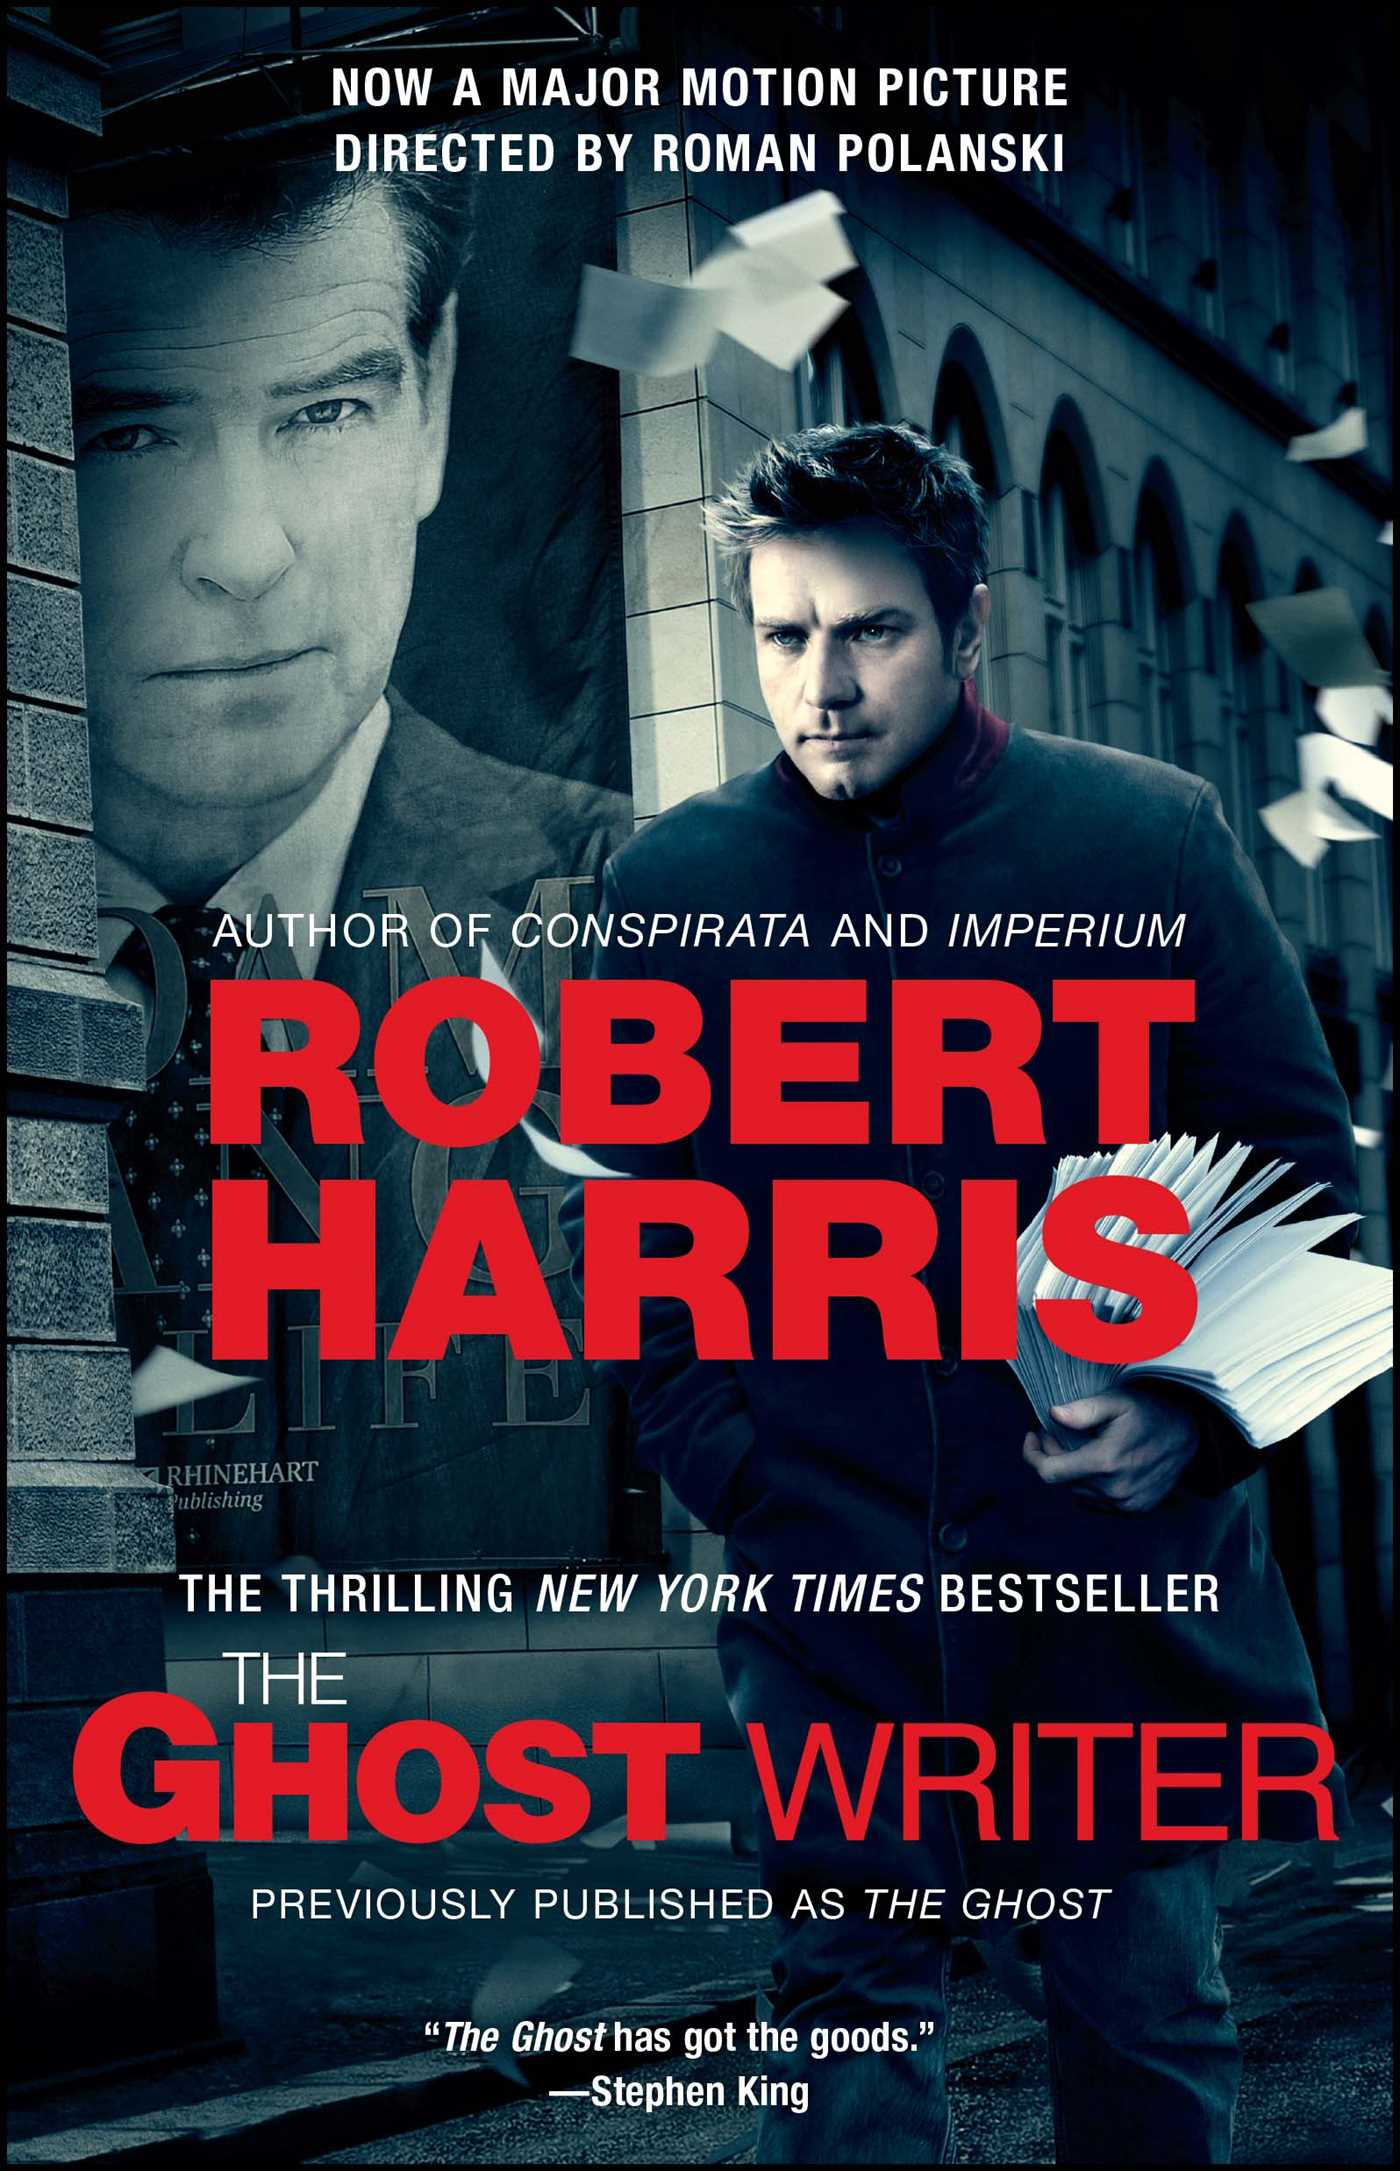 The ghost writer 9781439190555 hr